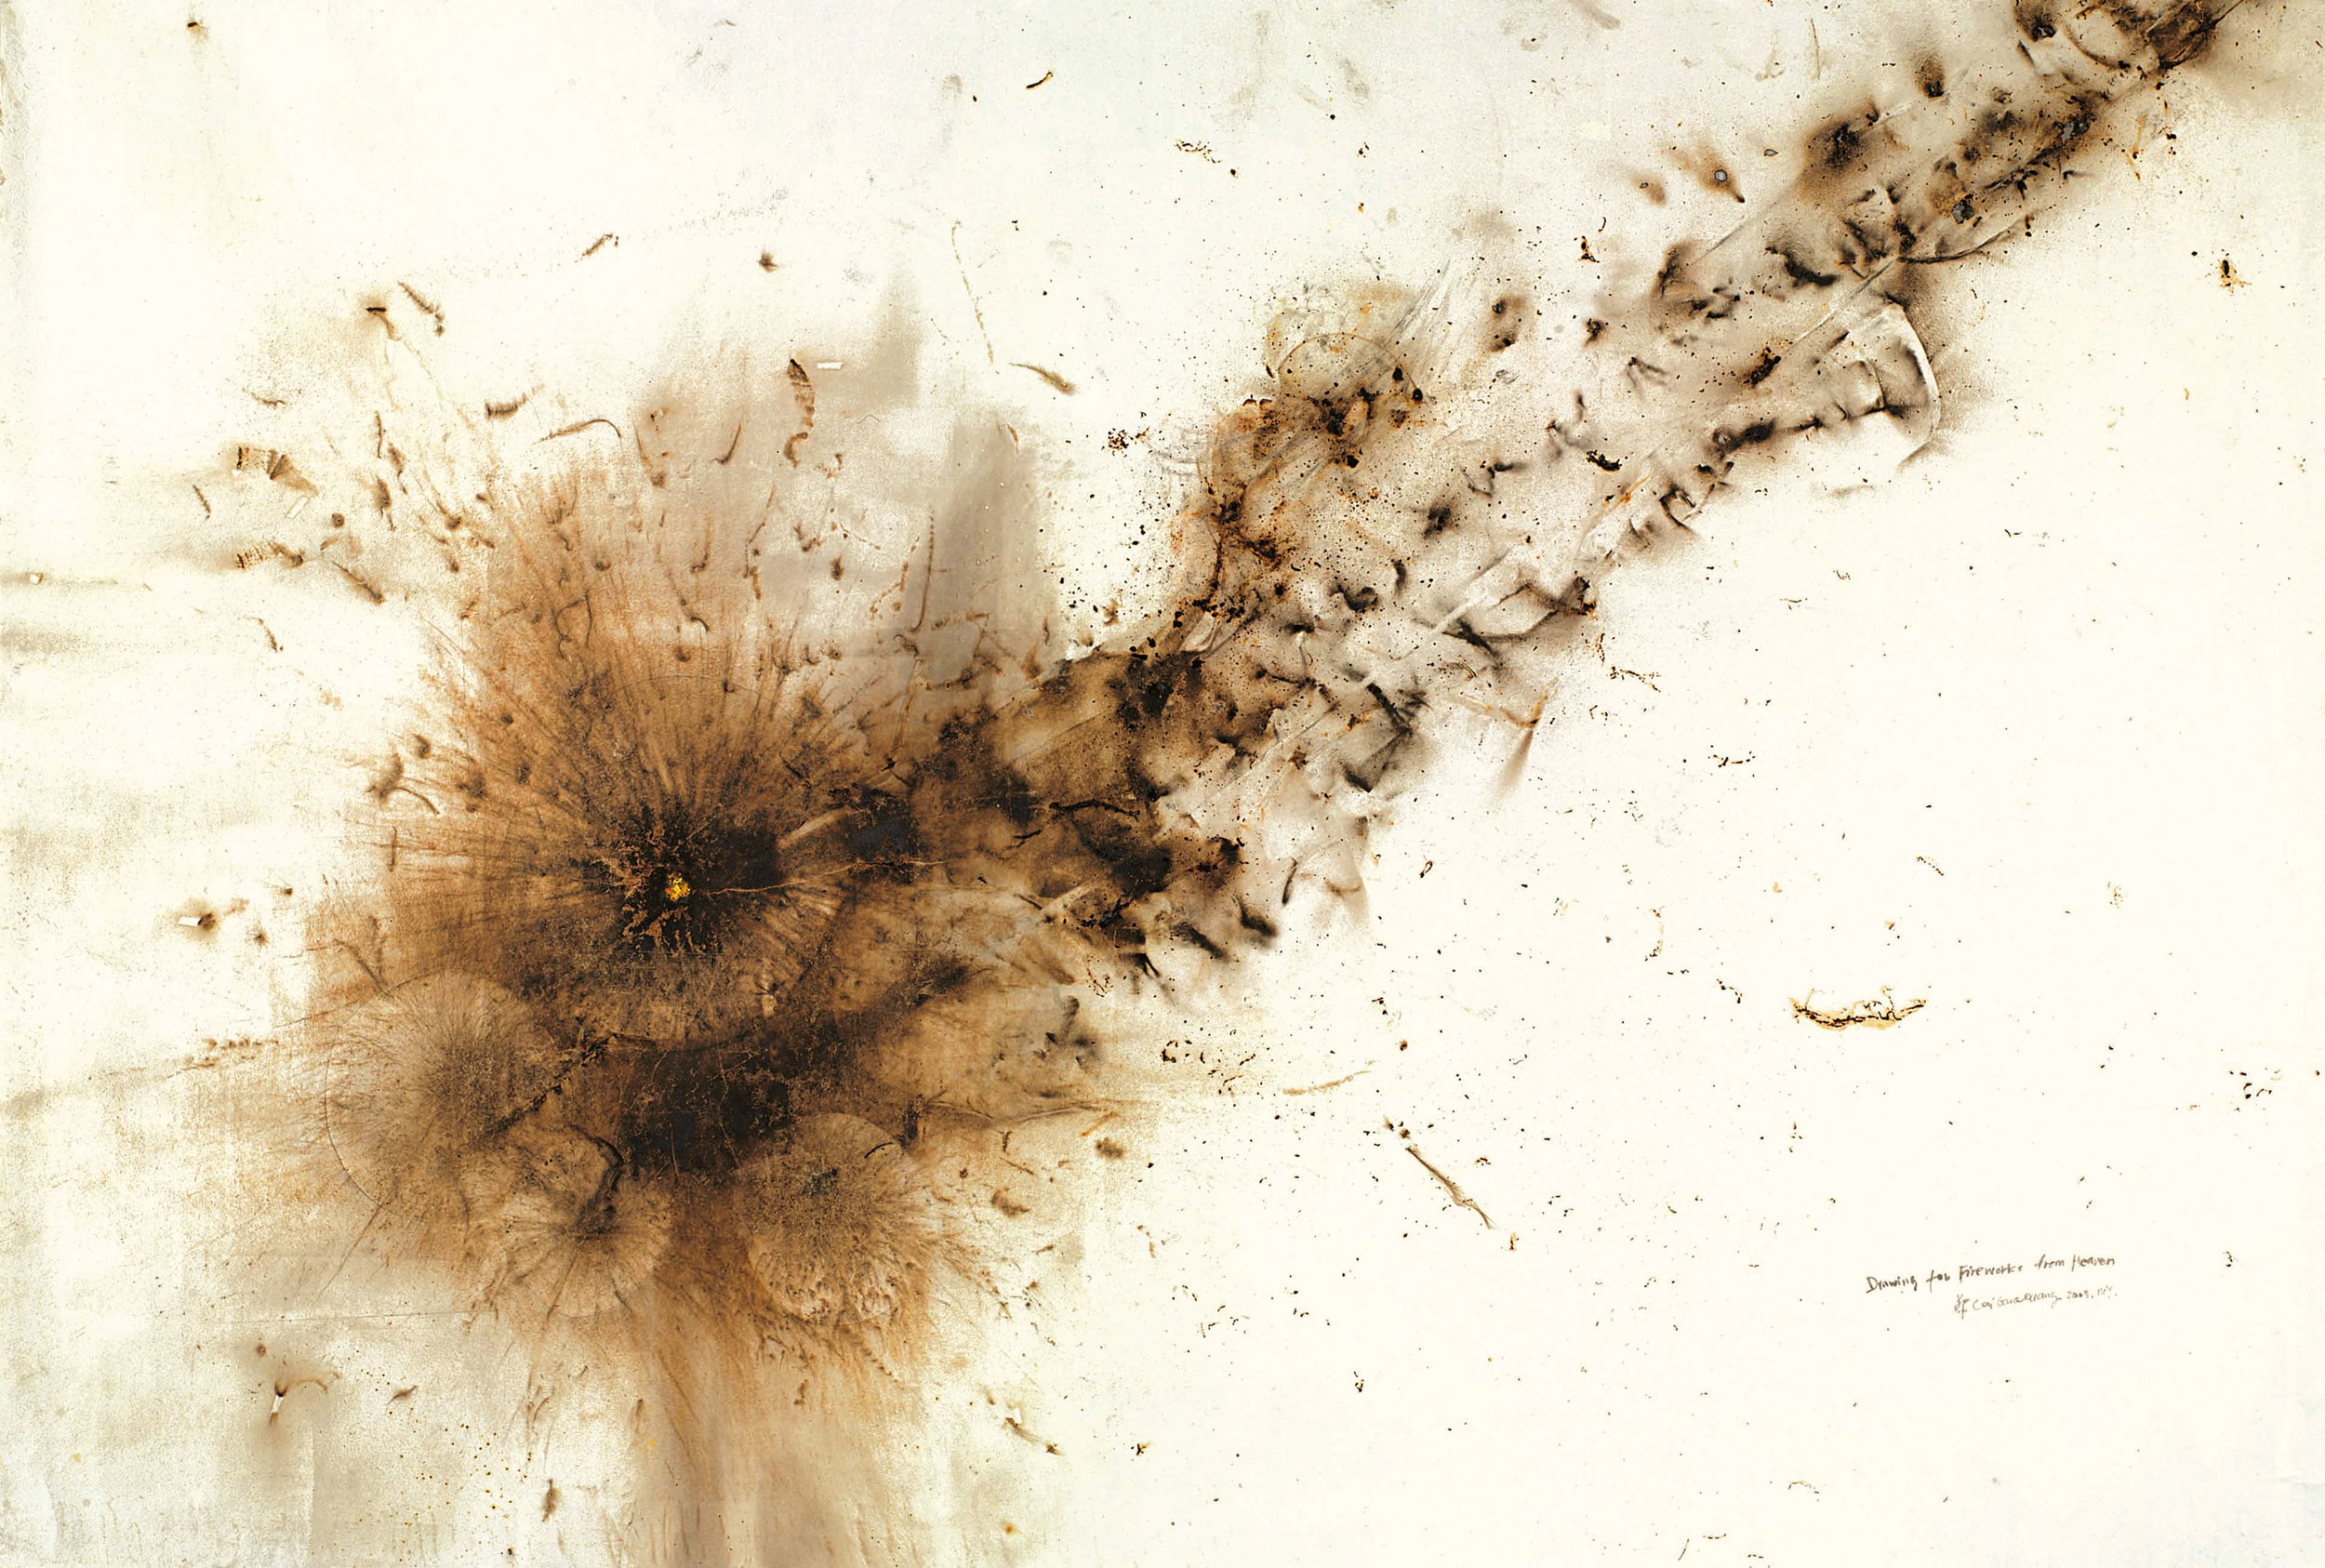 2014_HGK_03361_0515_000(cai_guoqiang_drawing_for_fireworks_from_heaven).jpg